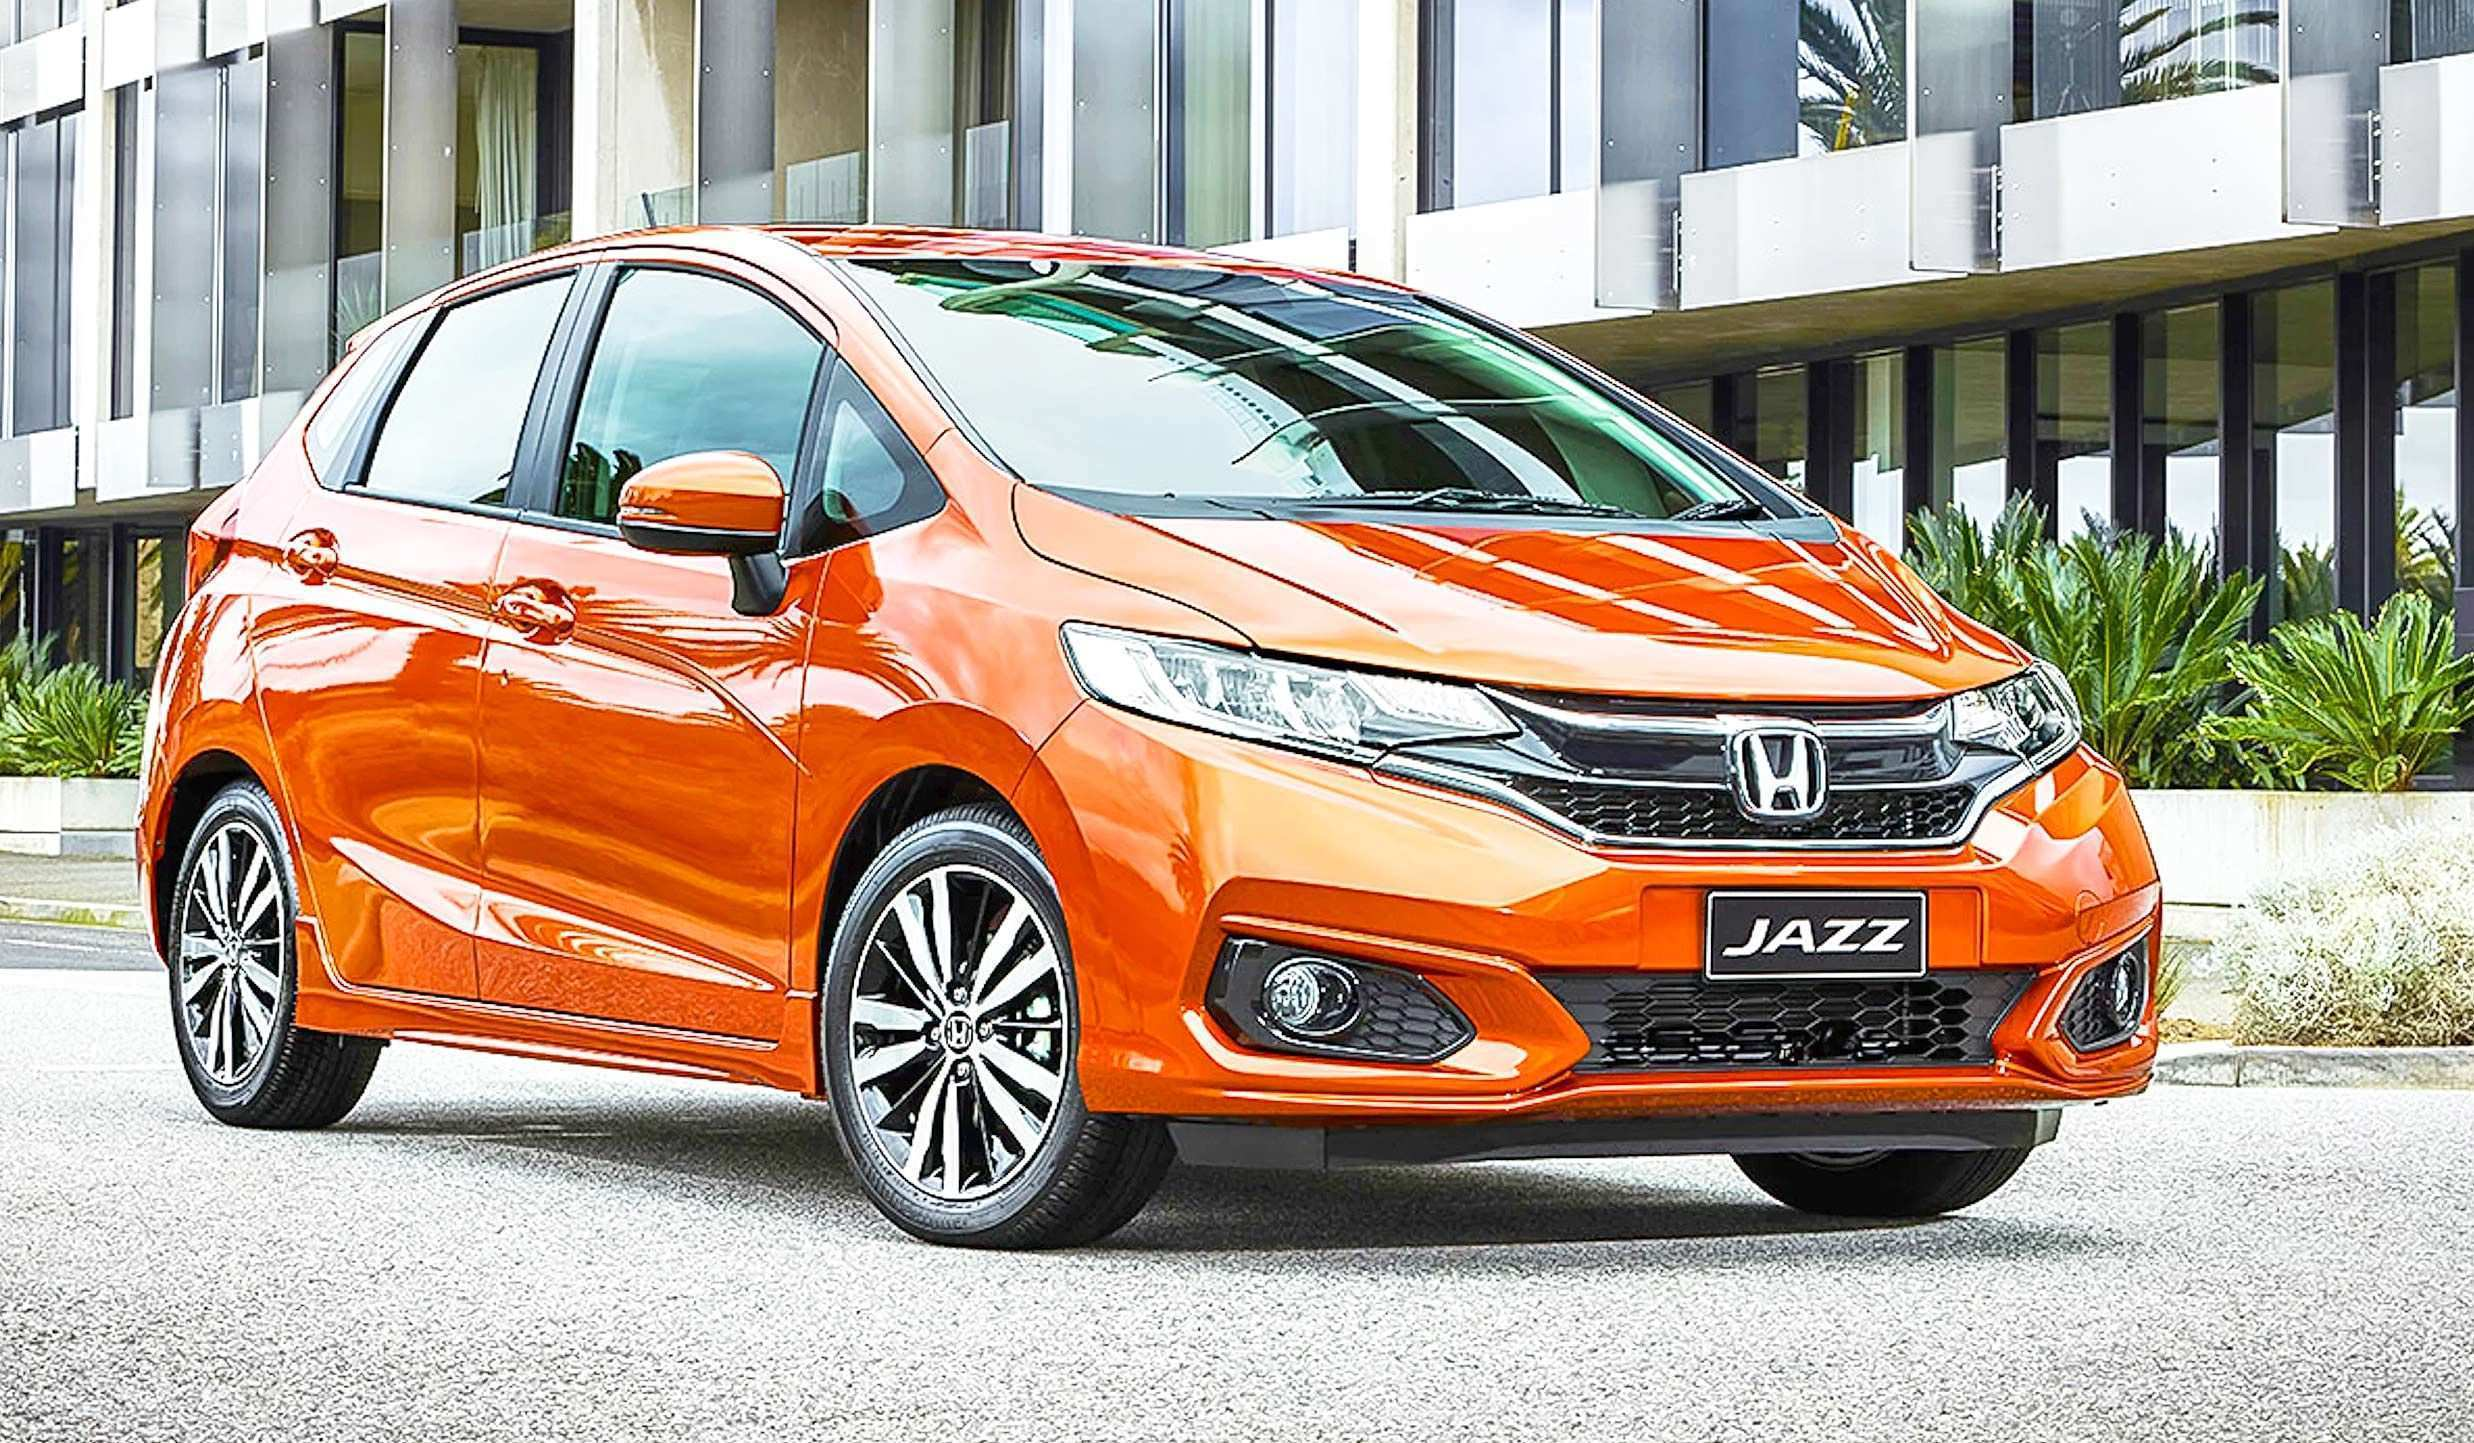 45 Best Review 2019 Honda Jazz Review Research New by 2019 Honda Jazz Review